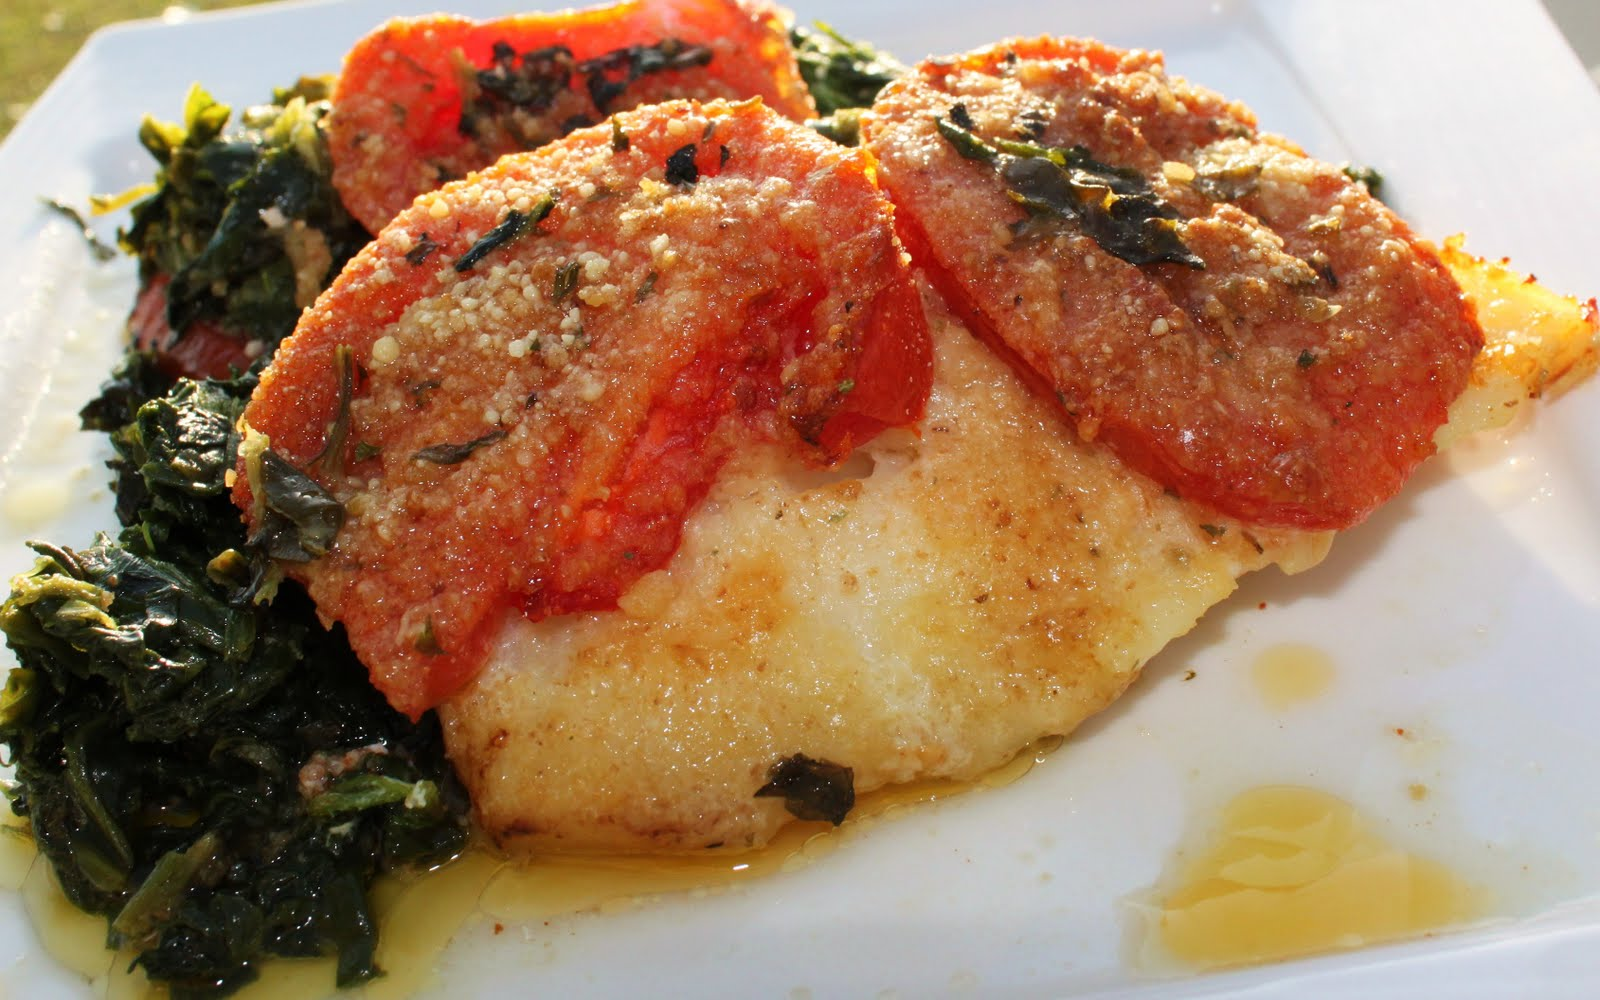 Baked cod with italian tomatoes and spinach dexter for How to bake cod fish in the oven